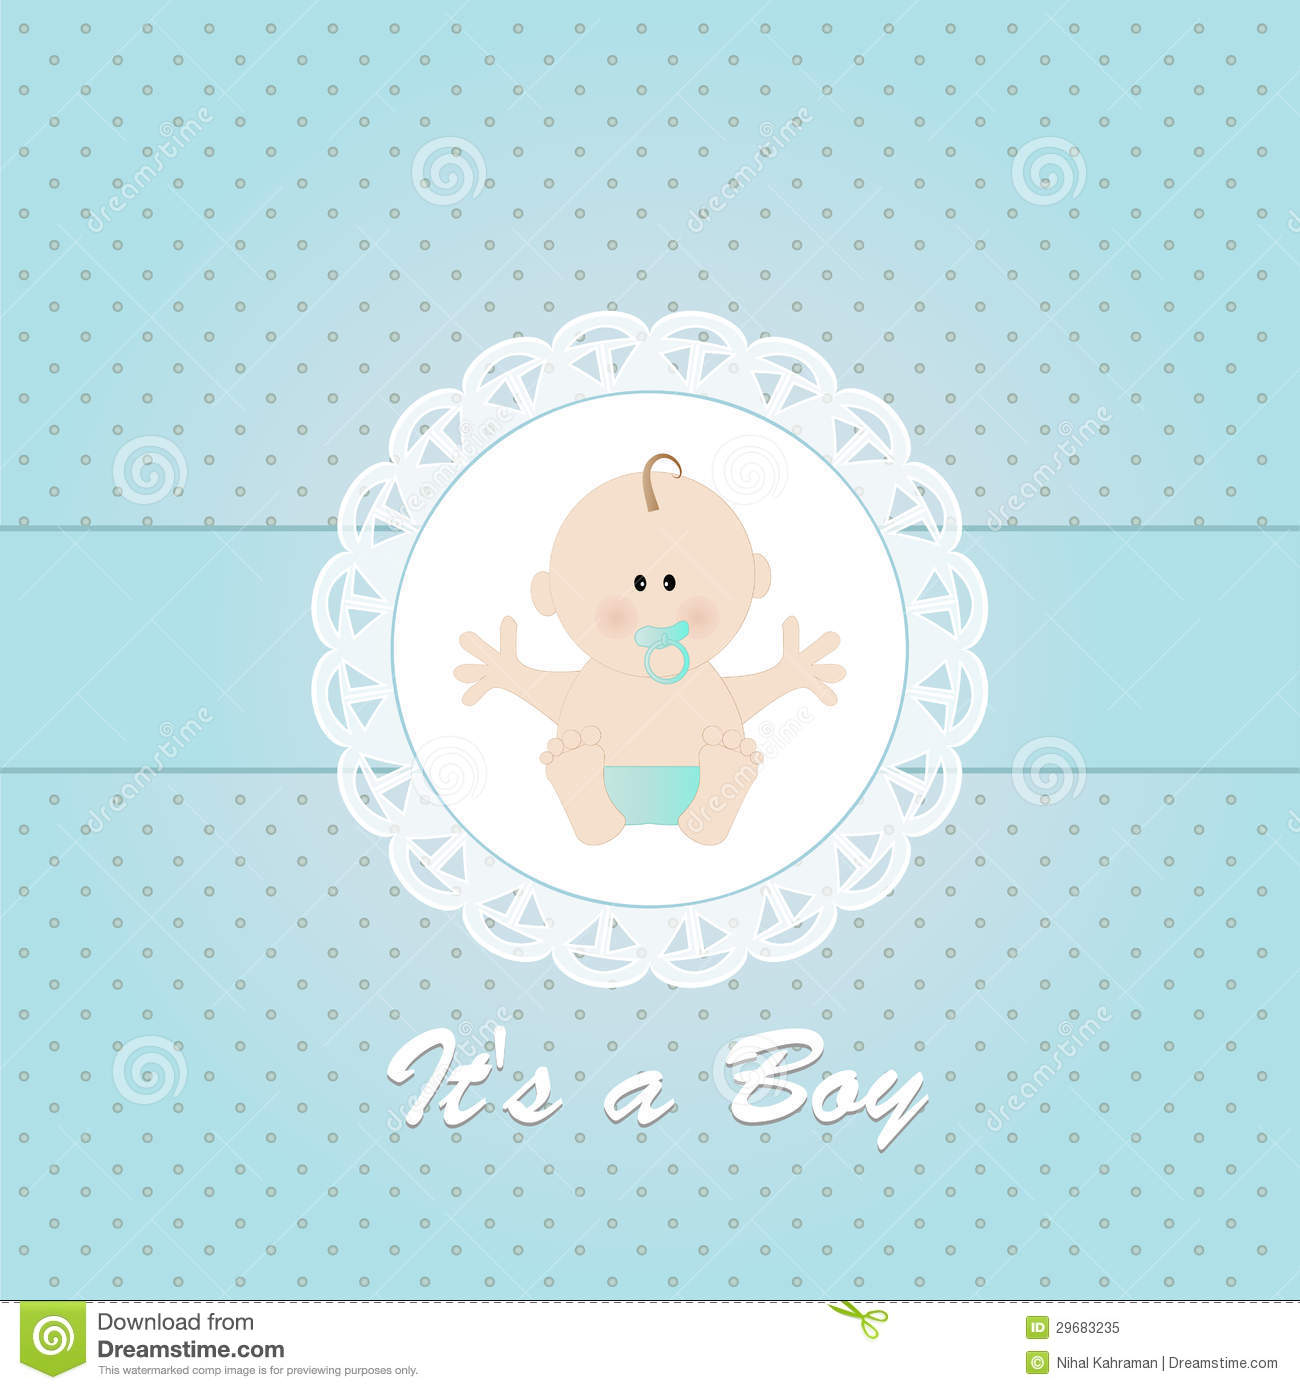 baby shower invitation with newborn baby boy royalty free stock